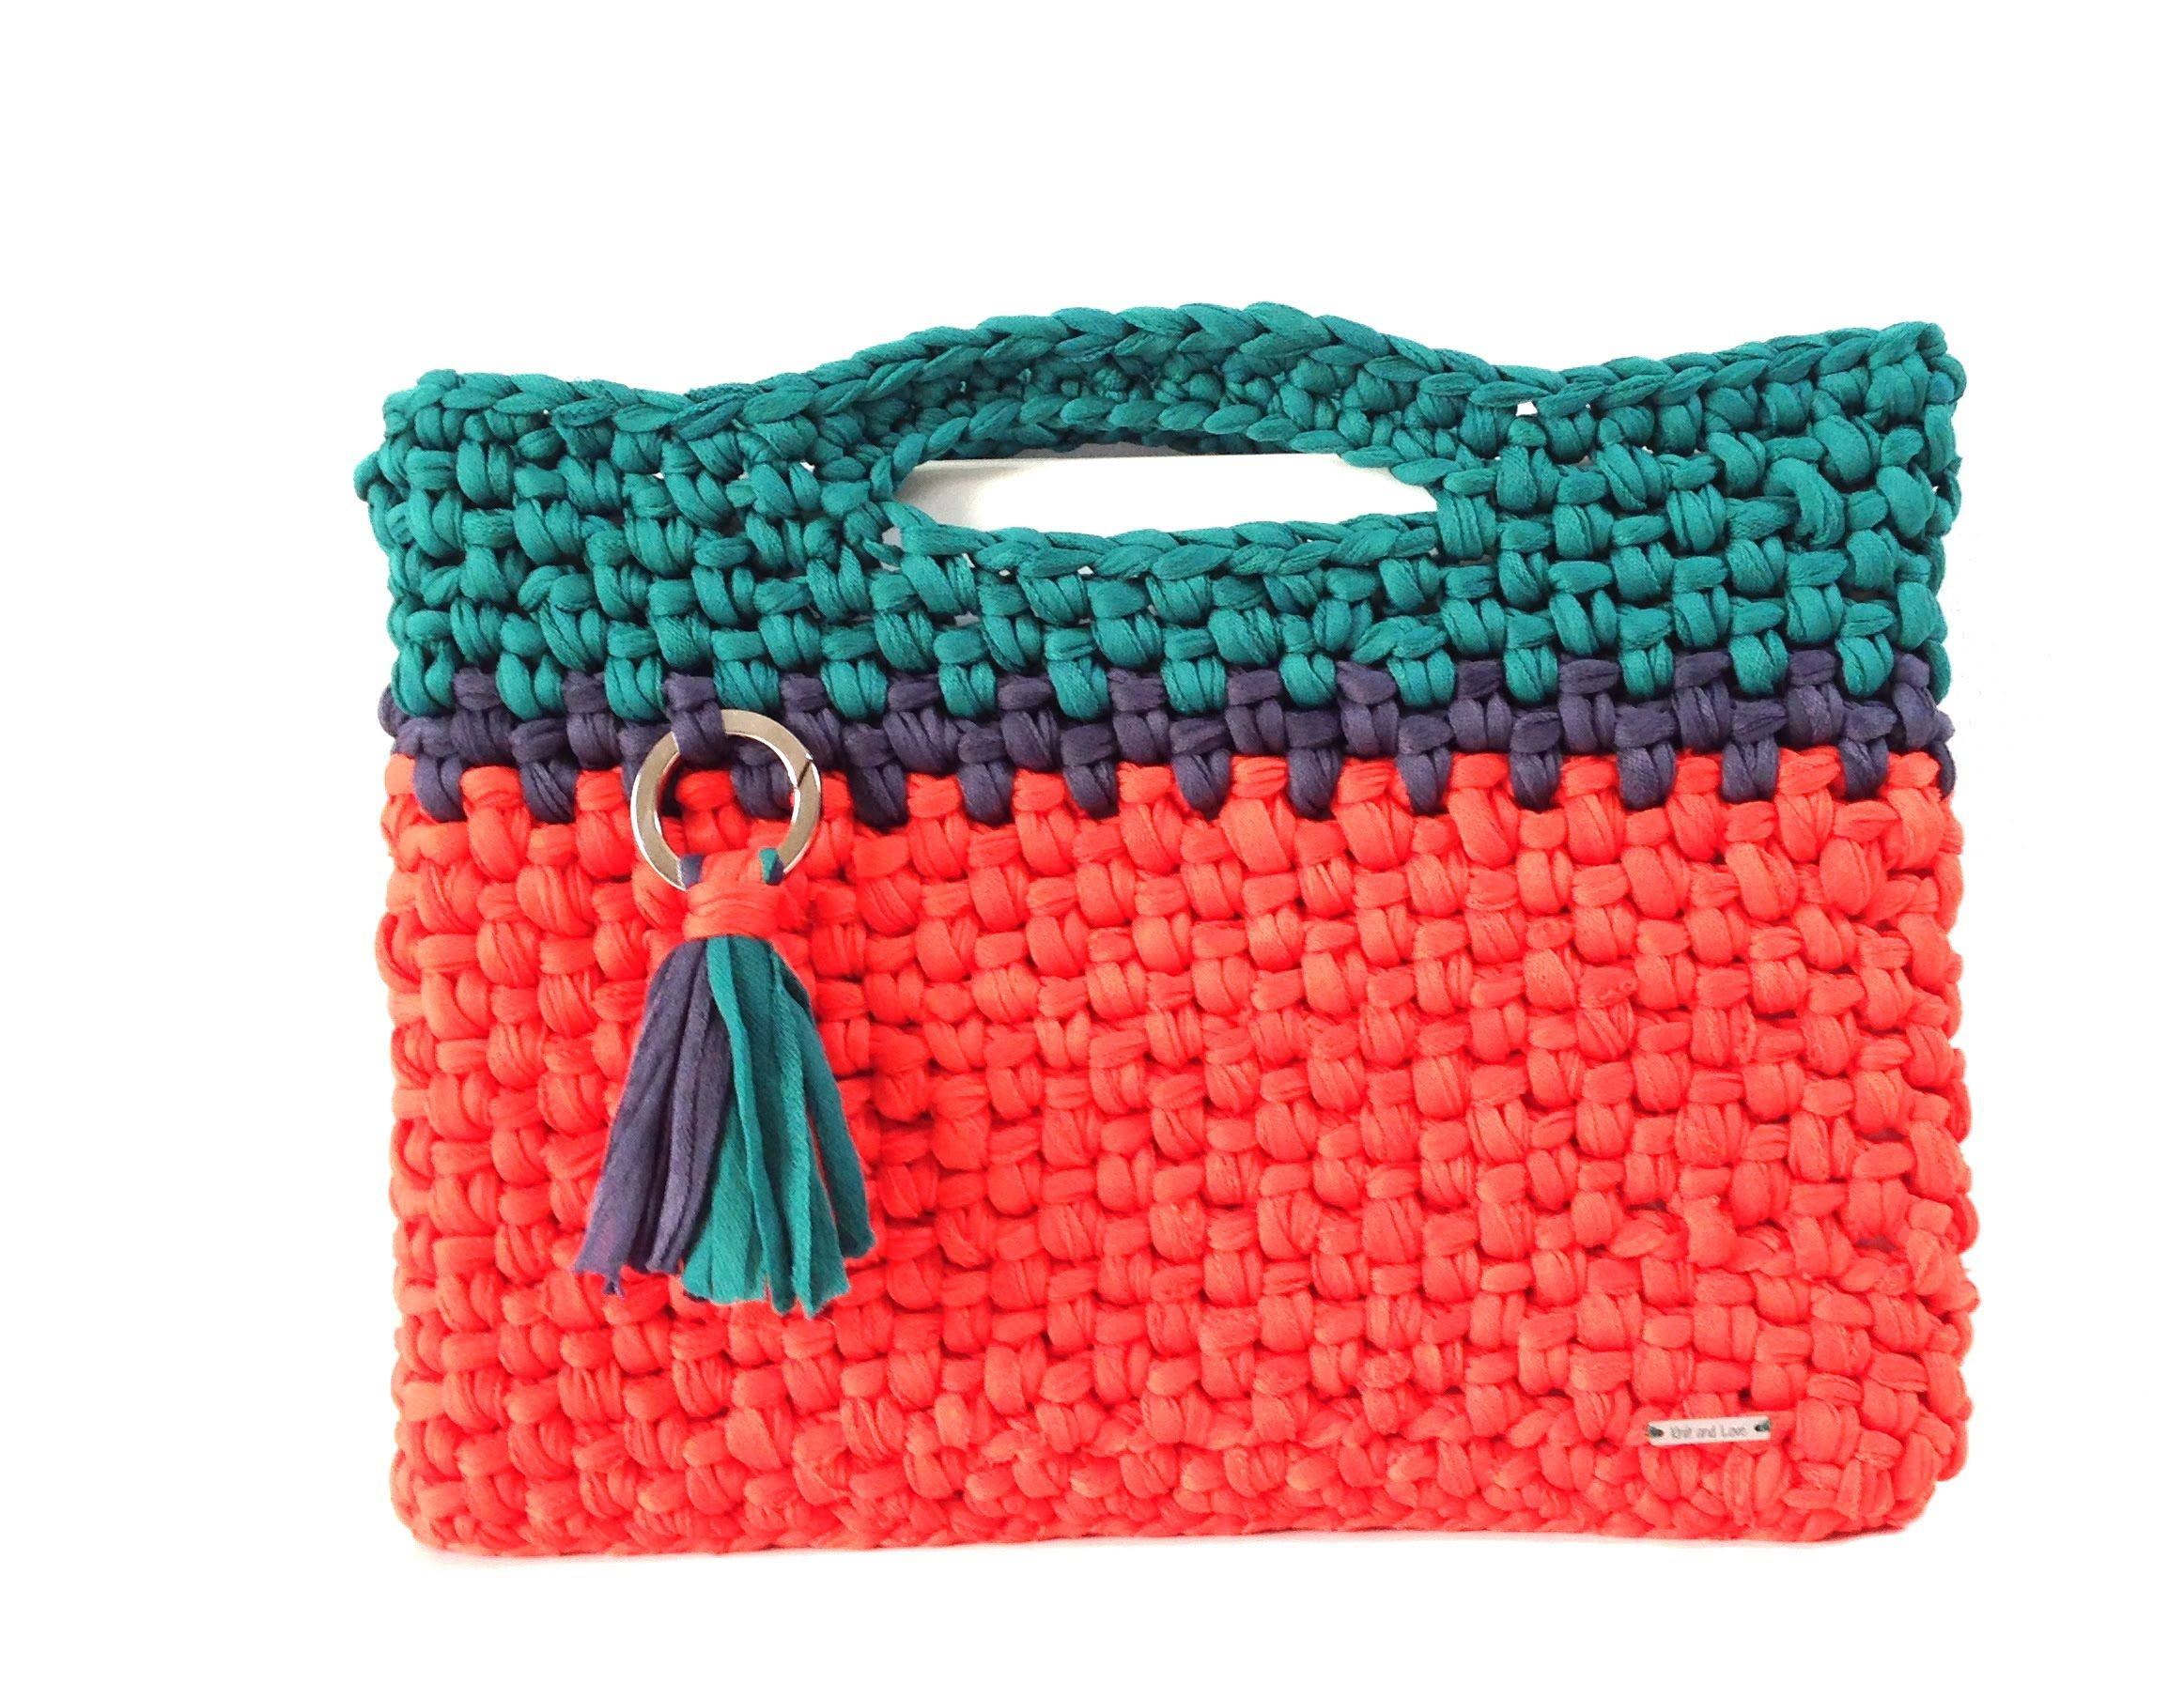 Bolsa ordenador crochet con trapillo pluma tutoriales for Tutoriales de trapillo